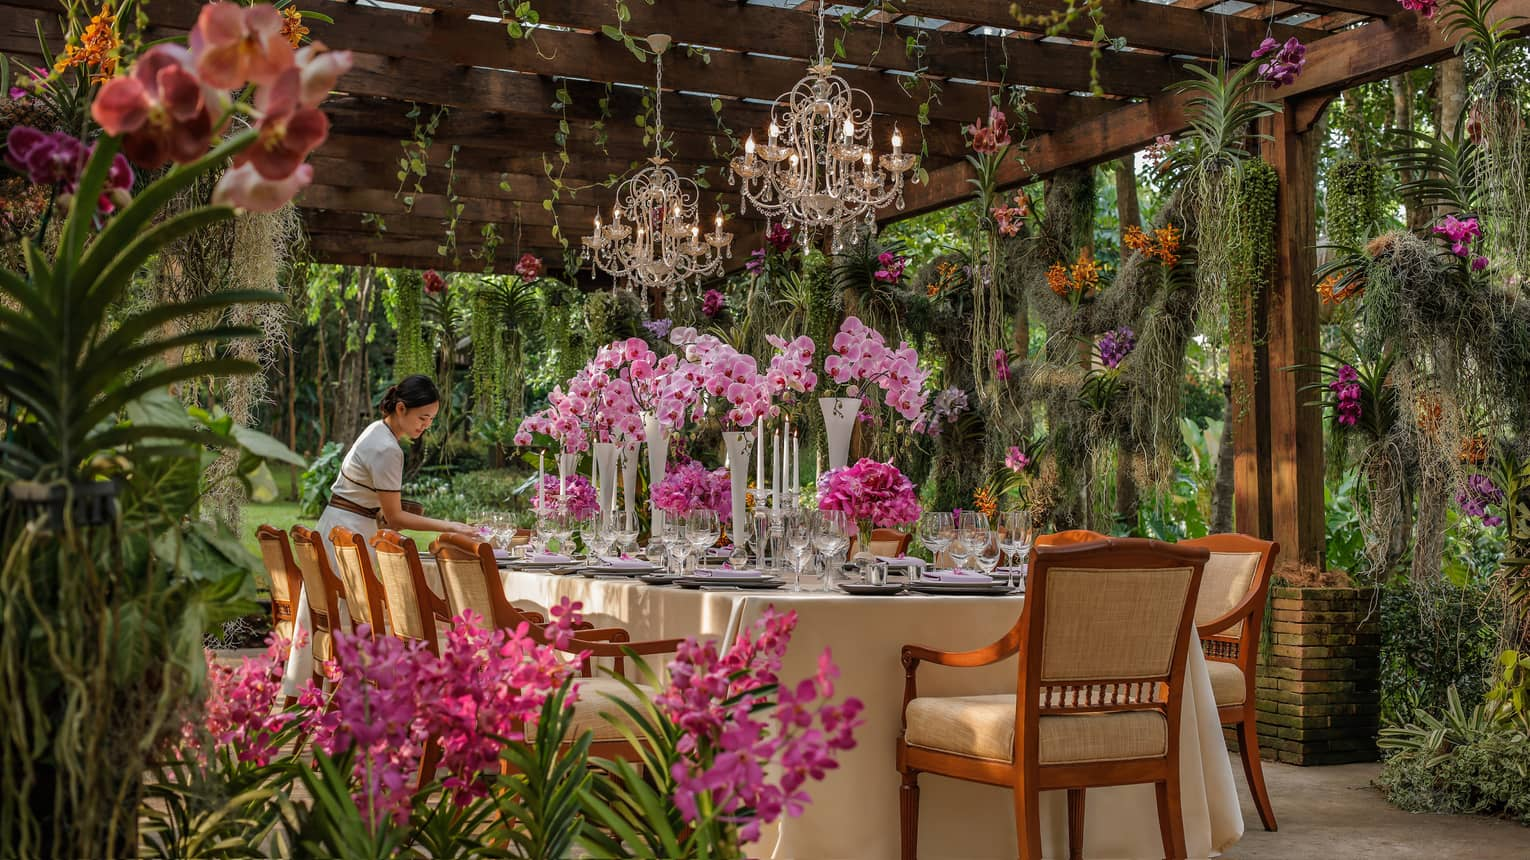 Hotel staff sets large formal dining table in tropical garden, large pink flowers under small crystal chandeliers